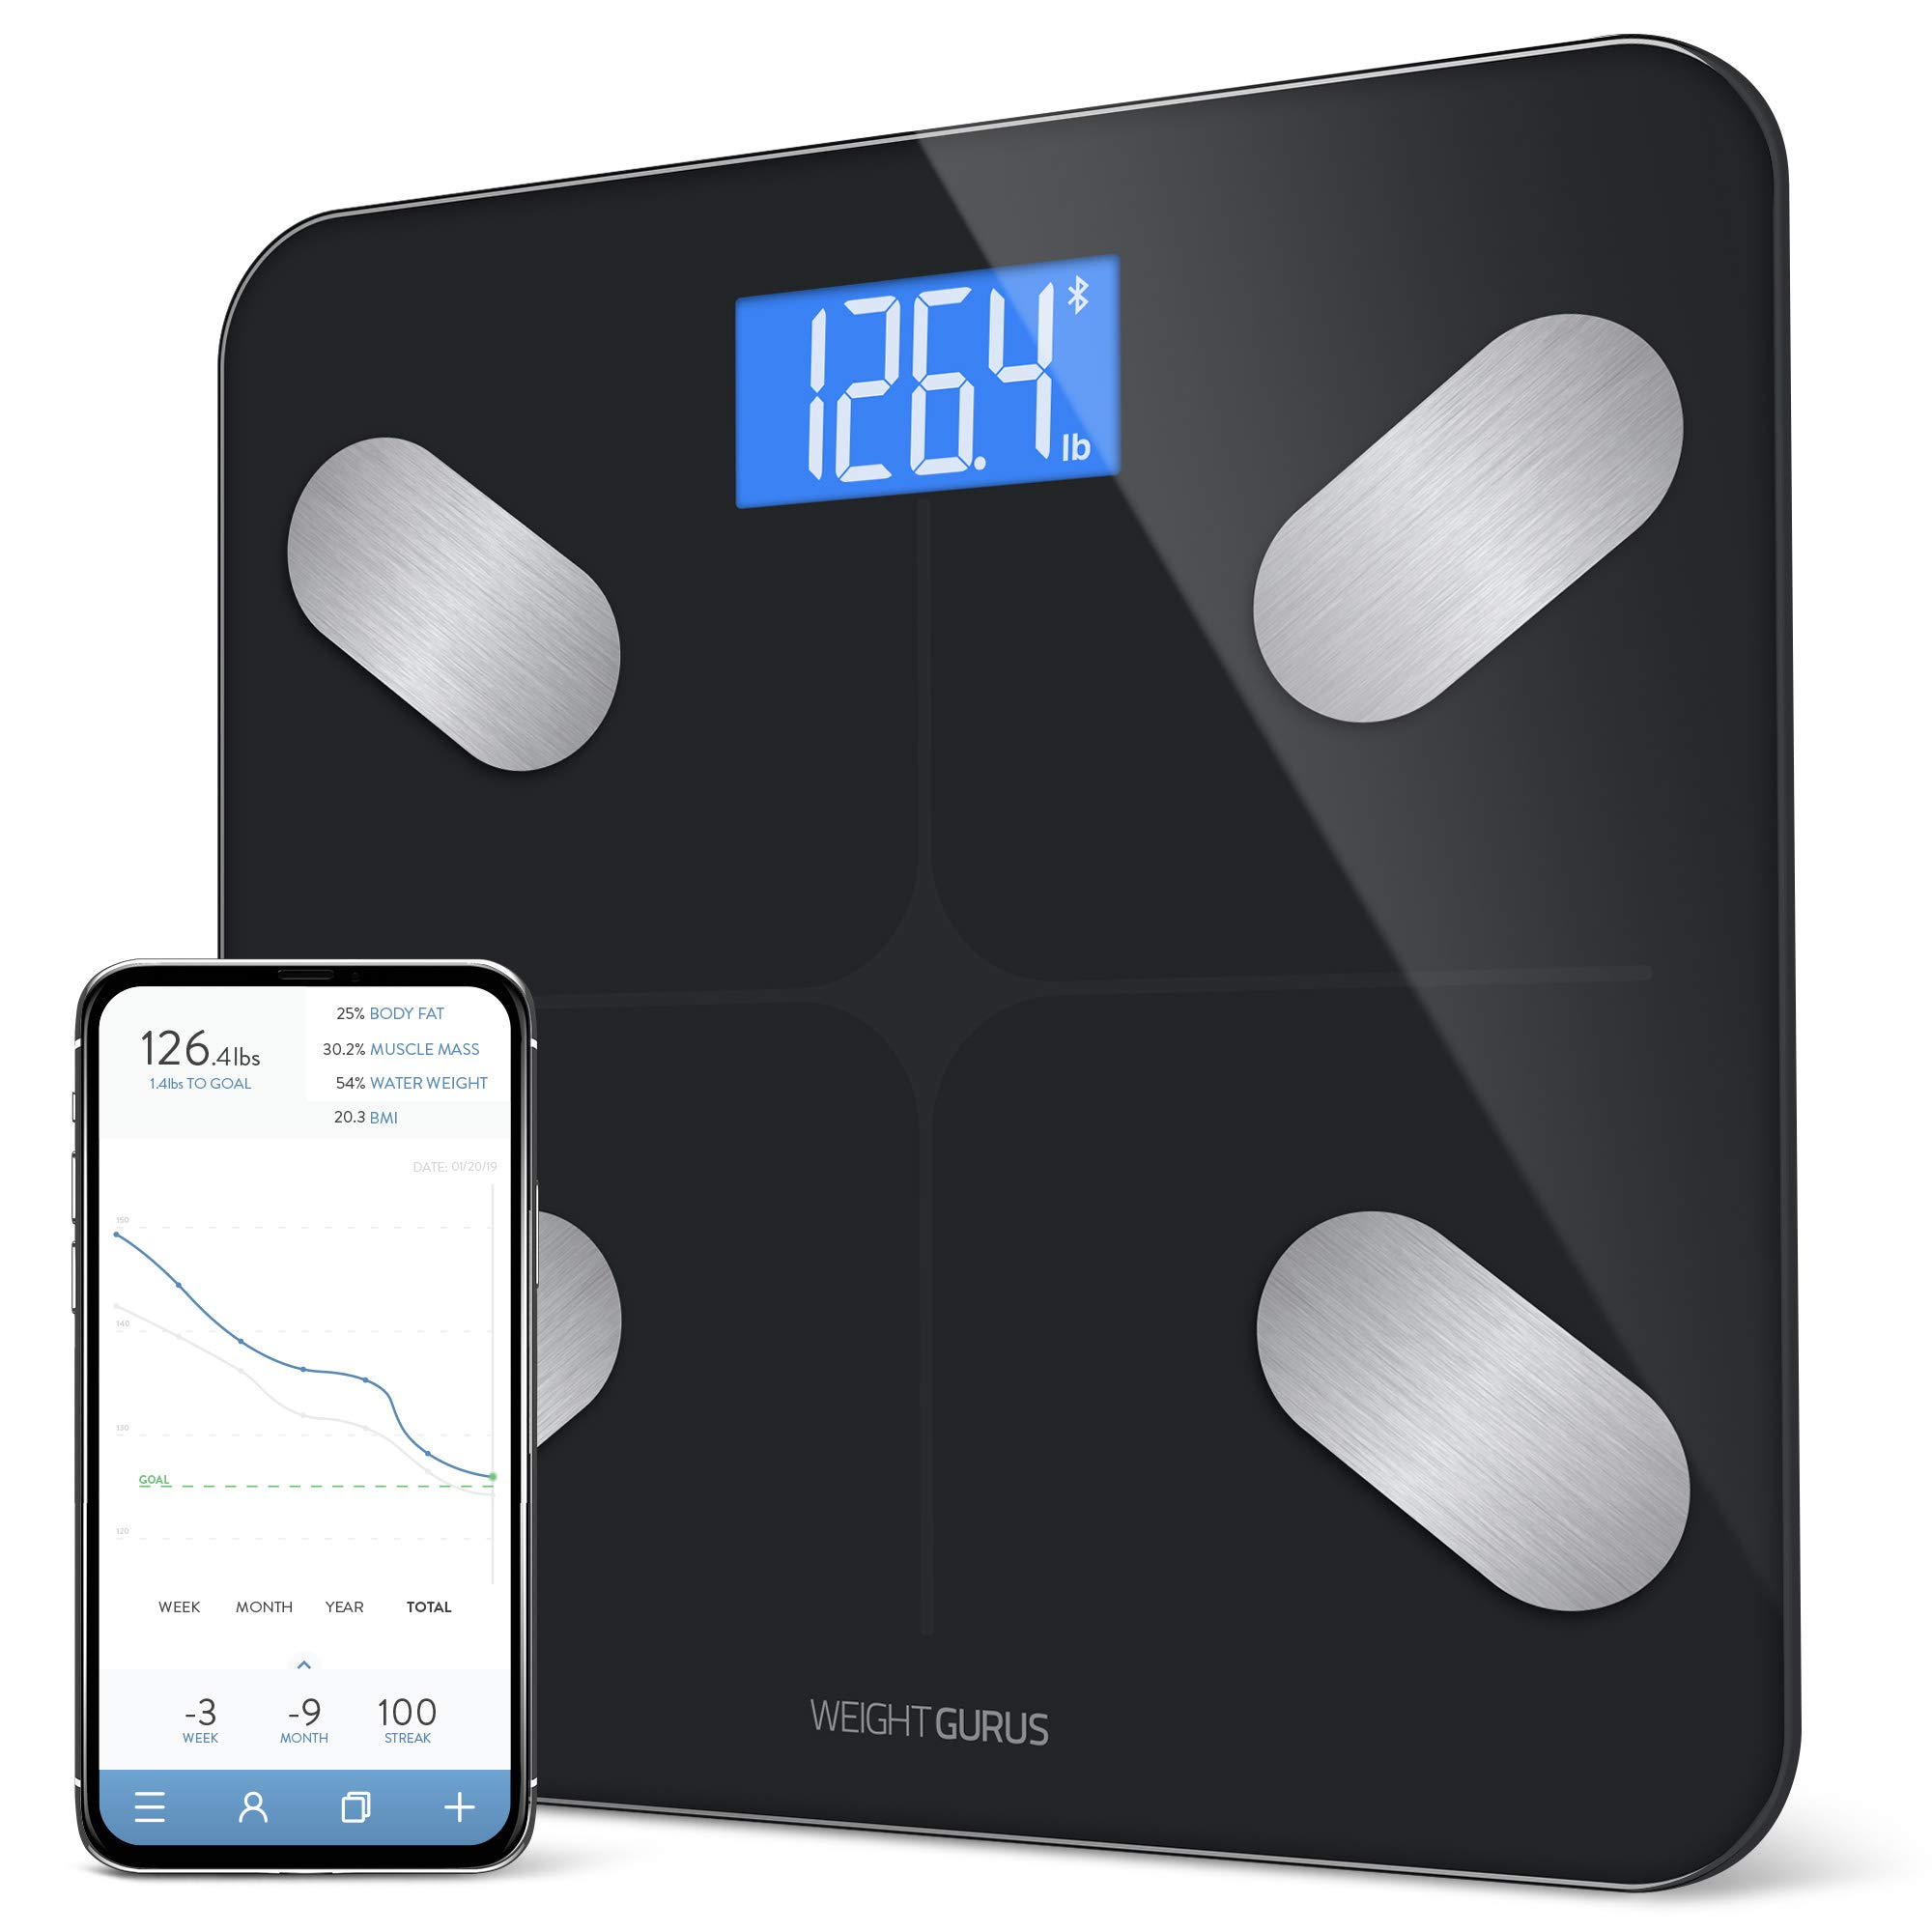 GreaterGoods Bluetooth Digital Body Fat Scale, Smart Body Composition Monitor, Secure Connected Solution for Your Data by Greater Goods